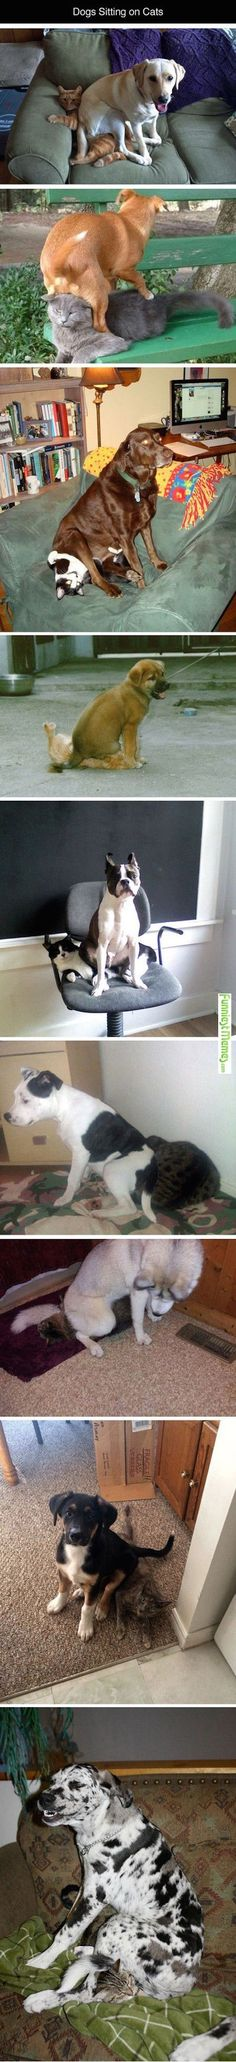 Dogs Sitting On Cats Is Just What Your Day Needs